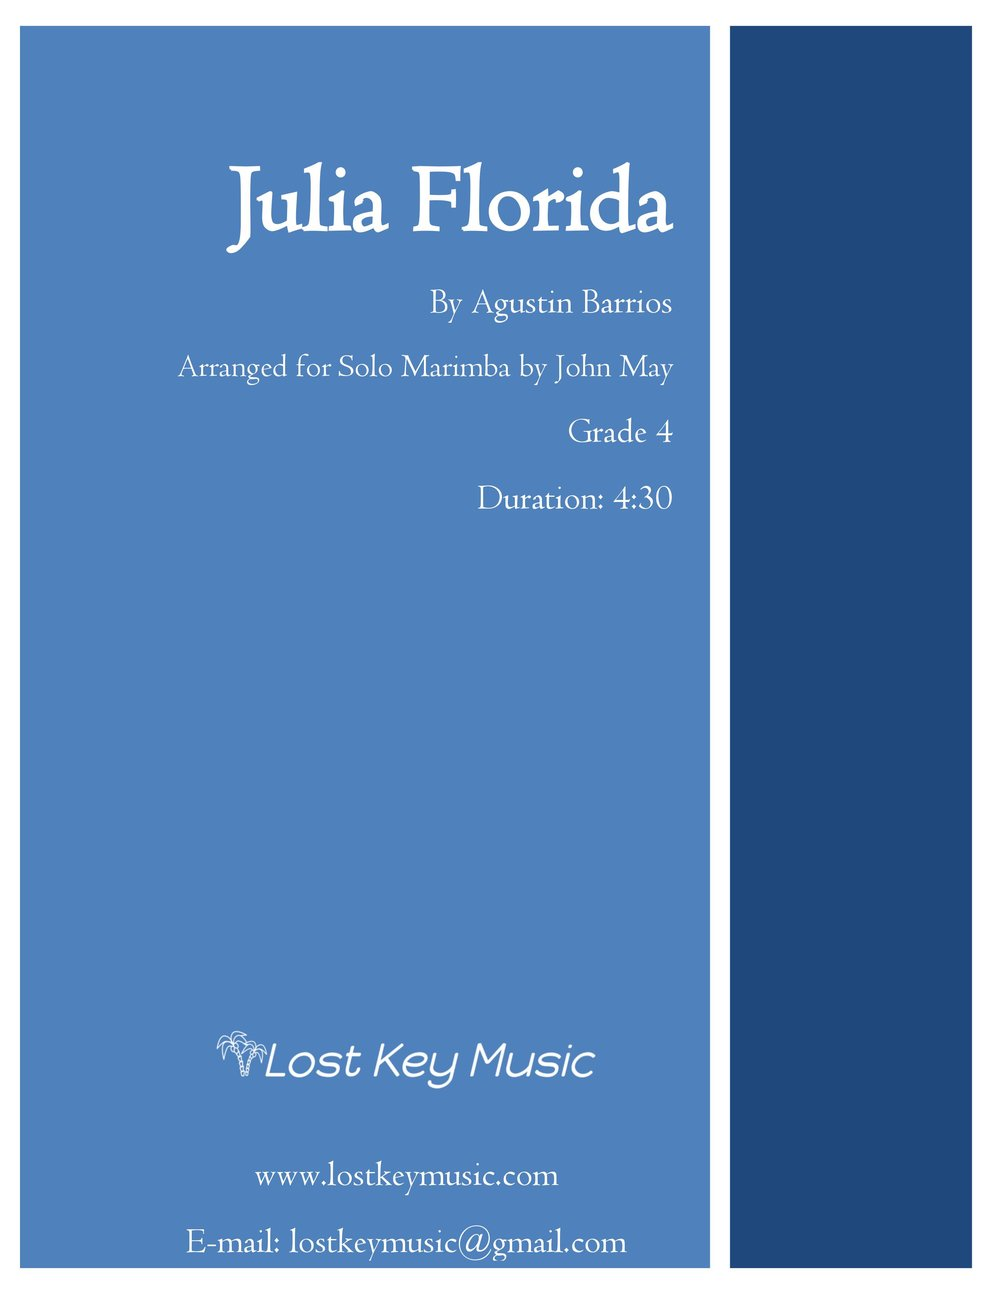 Julia Florida cover photo.jpg